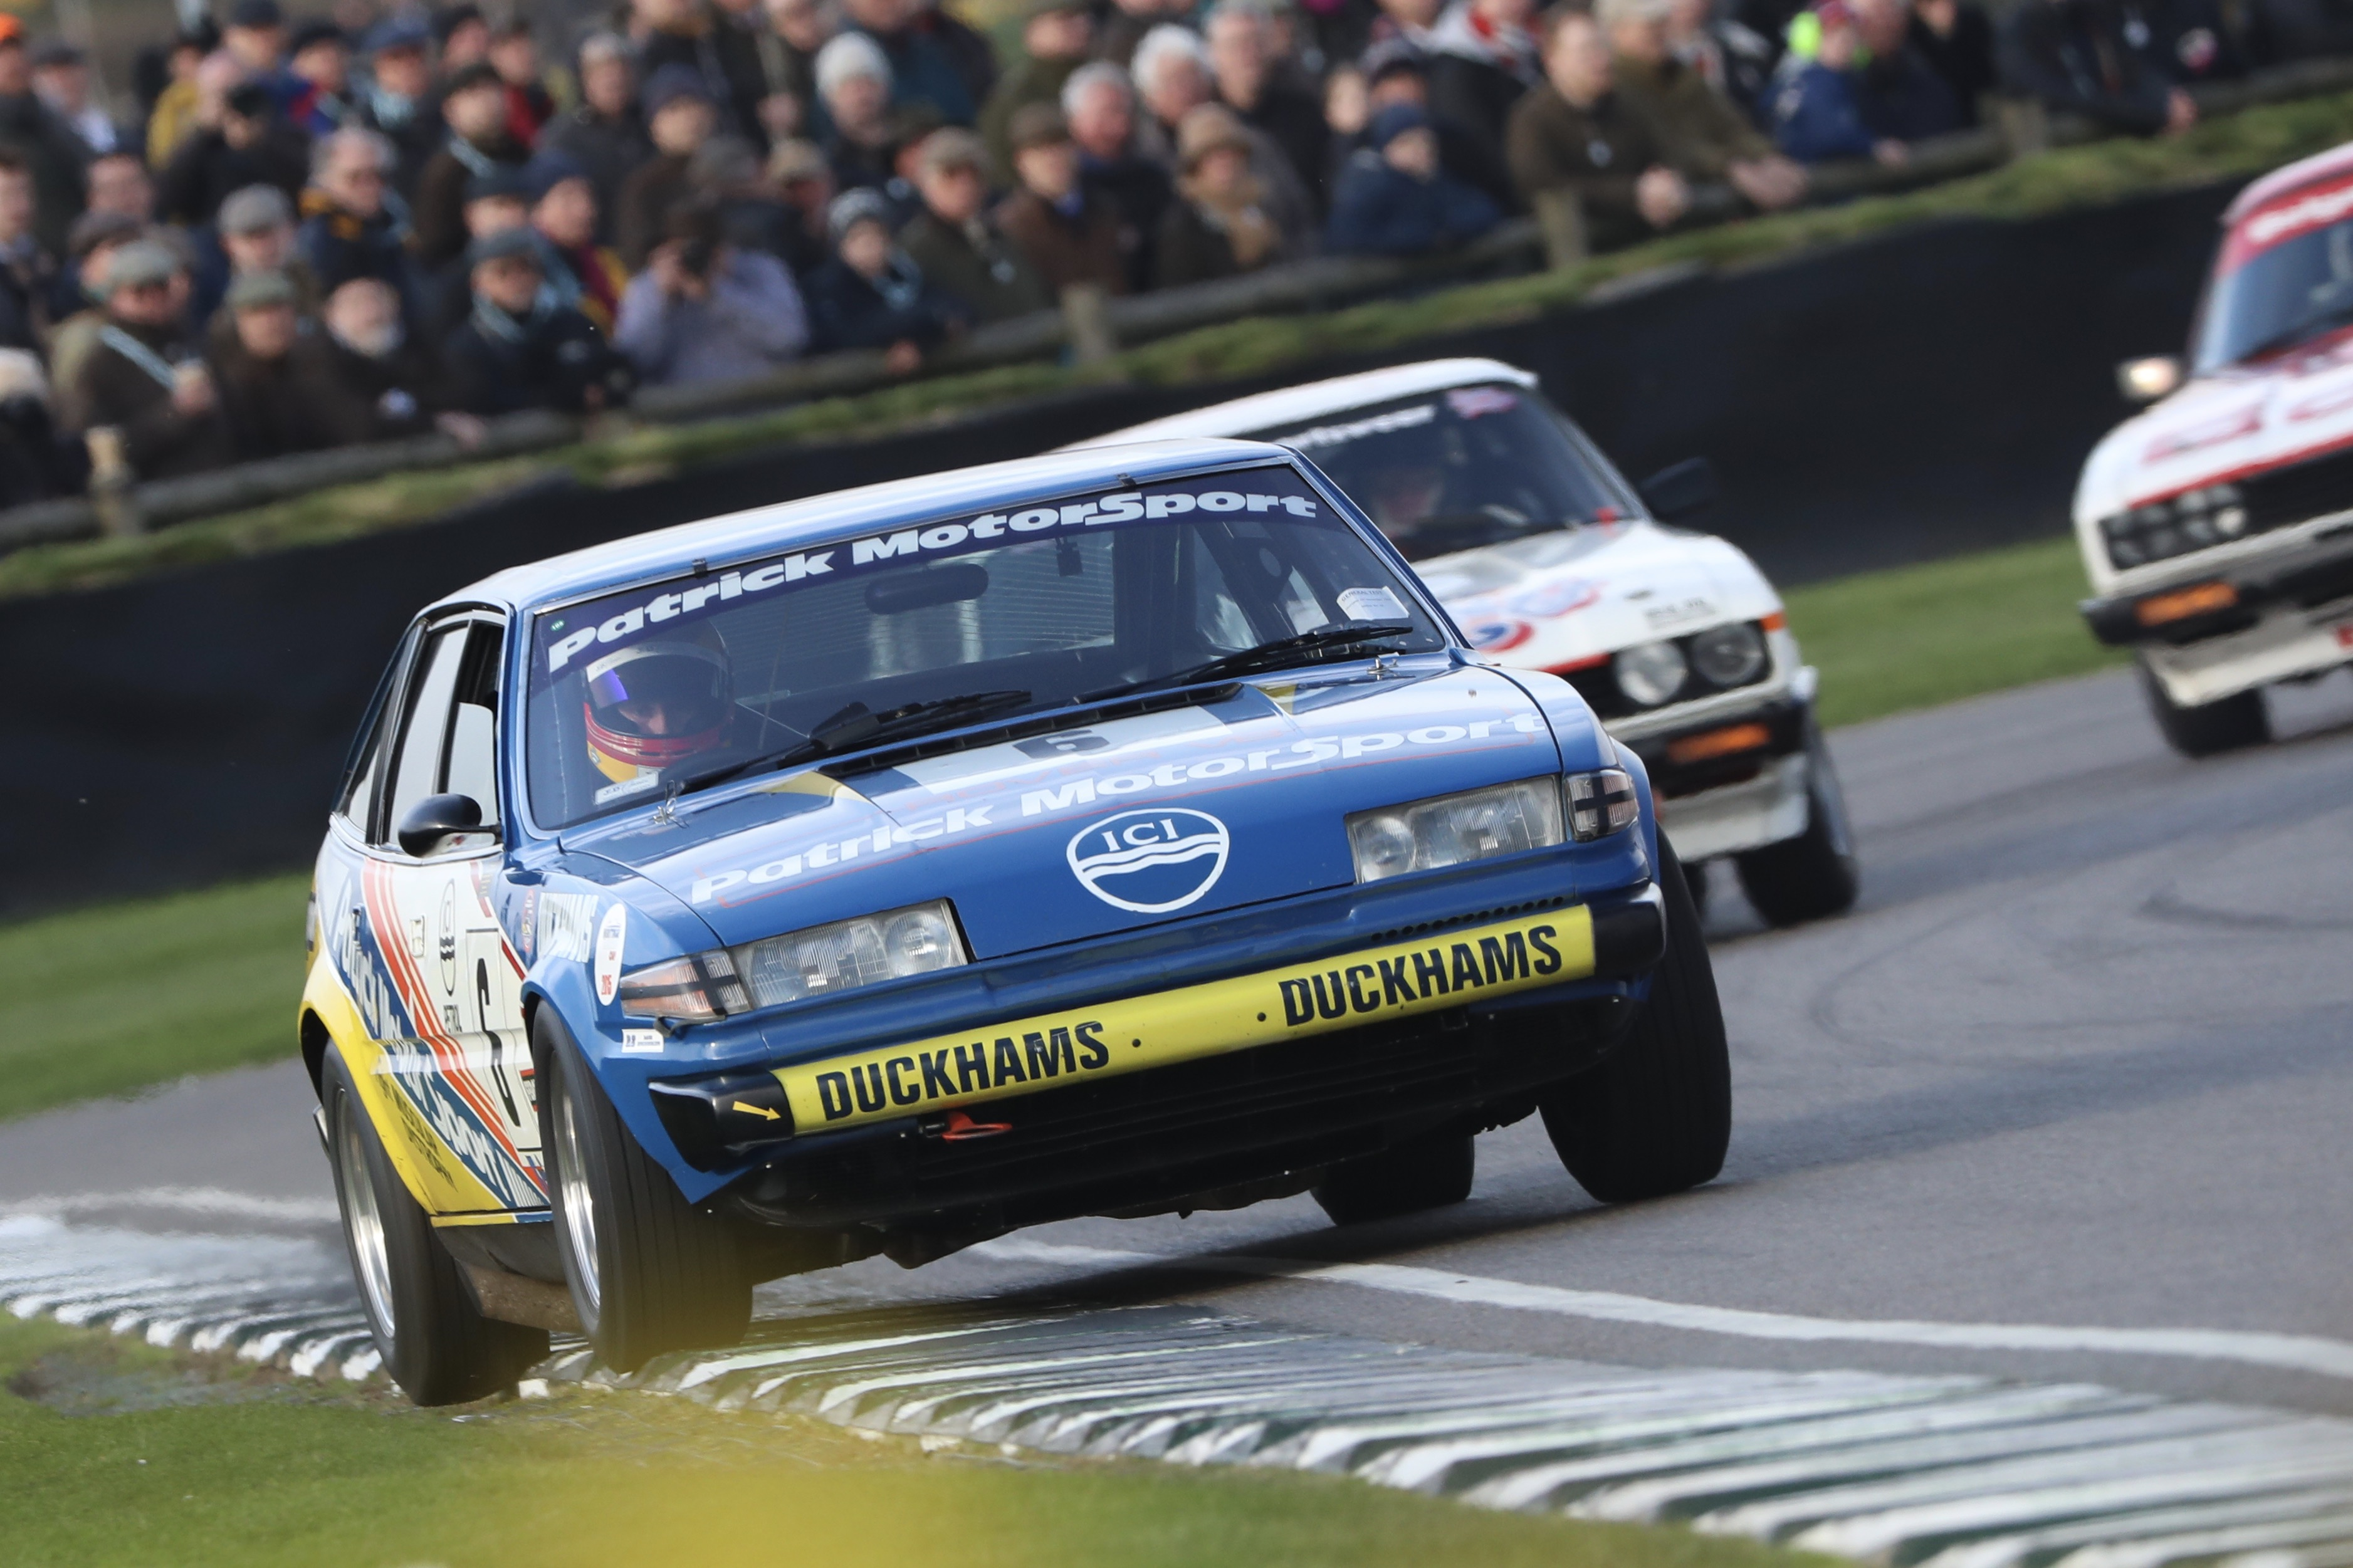 A dominant second race for the Rover SD1 awarded JD Classics a double victory in the weekend's Gerry Marshall Trophy.